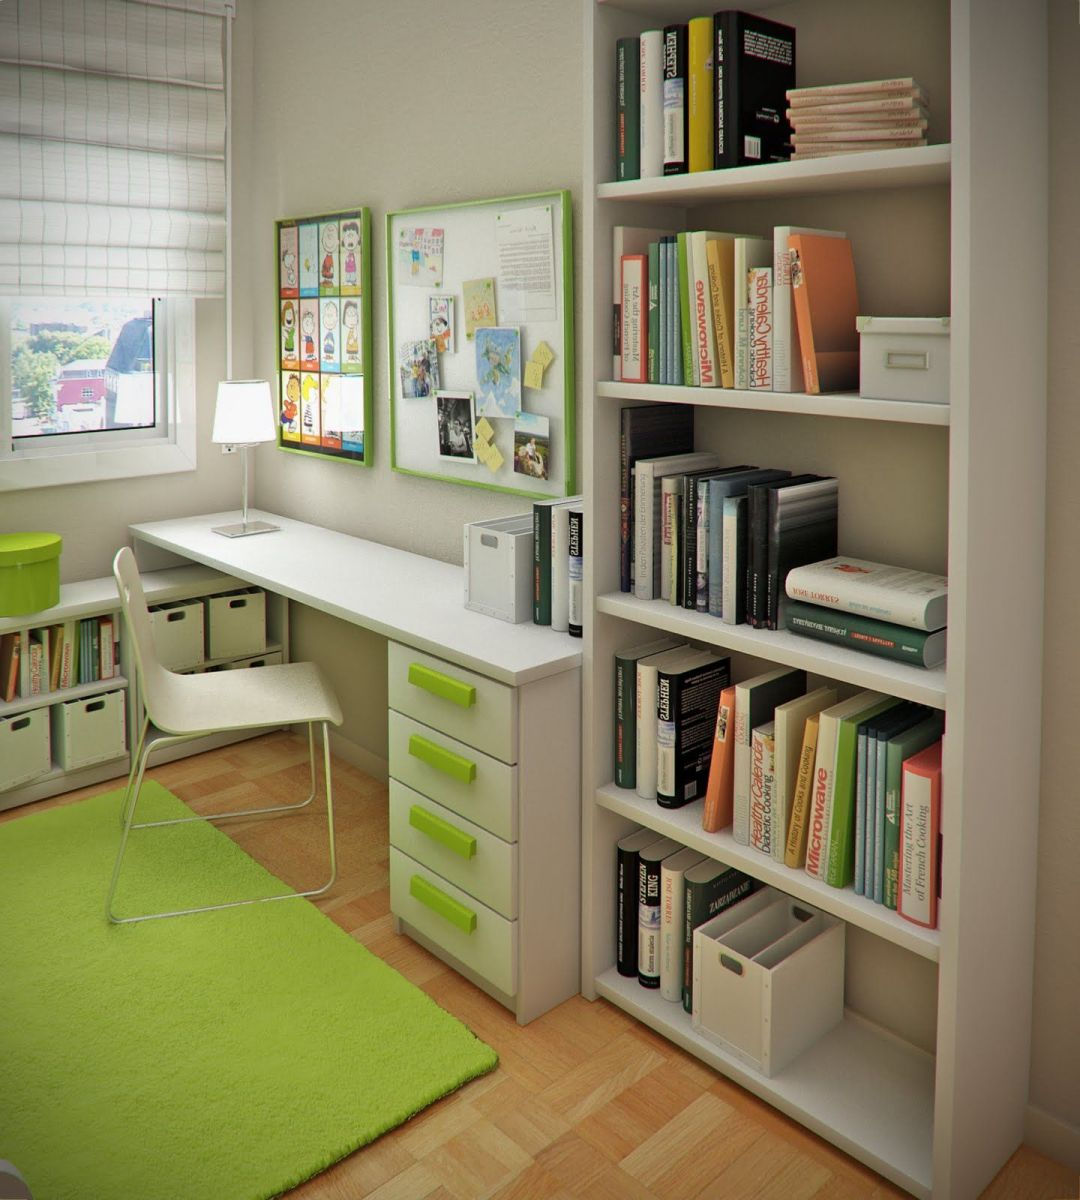 Unordinary space saving design ideas for small kids rooms 12